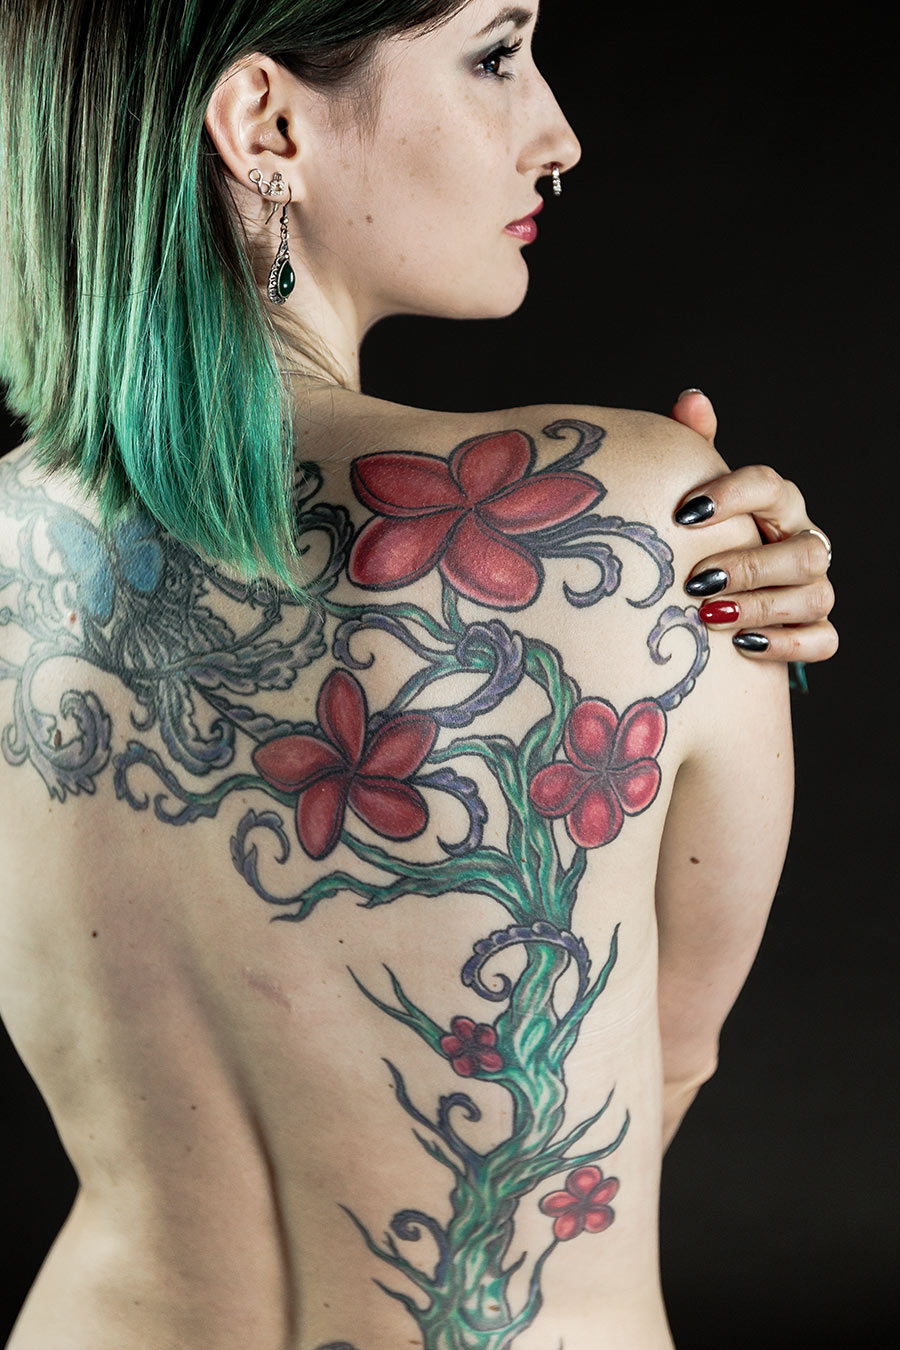 Grassi invites 4 Tattoo&Piercing – Antje fotografiert